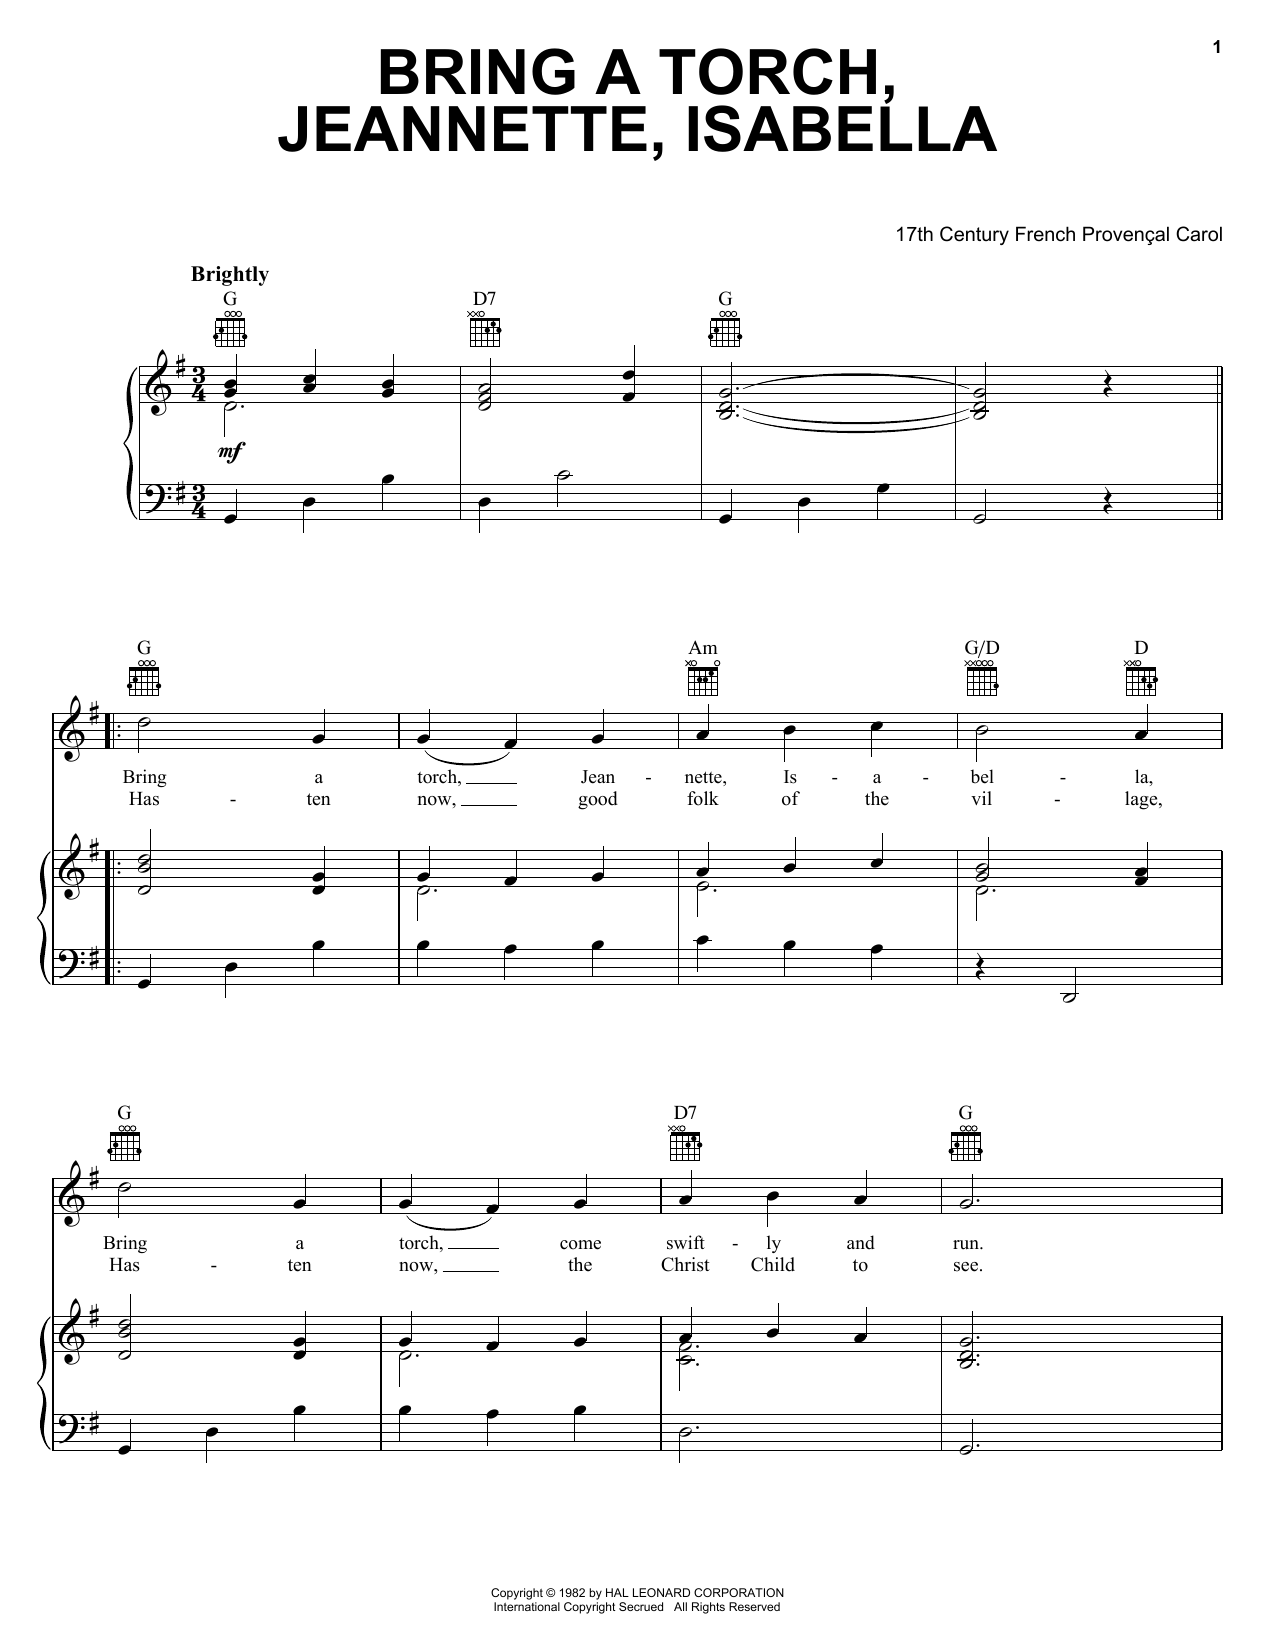 17th Century French Carol Bring A Torch, Jeannette Isabella sheet music notes and chords. Download Printable PDF.